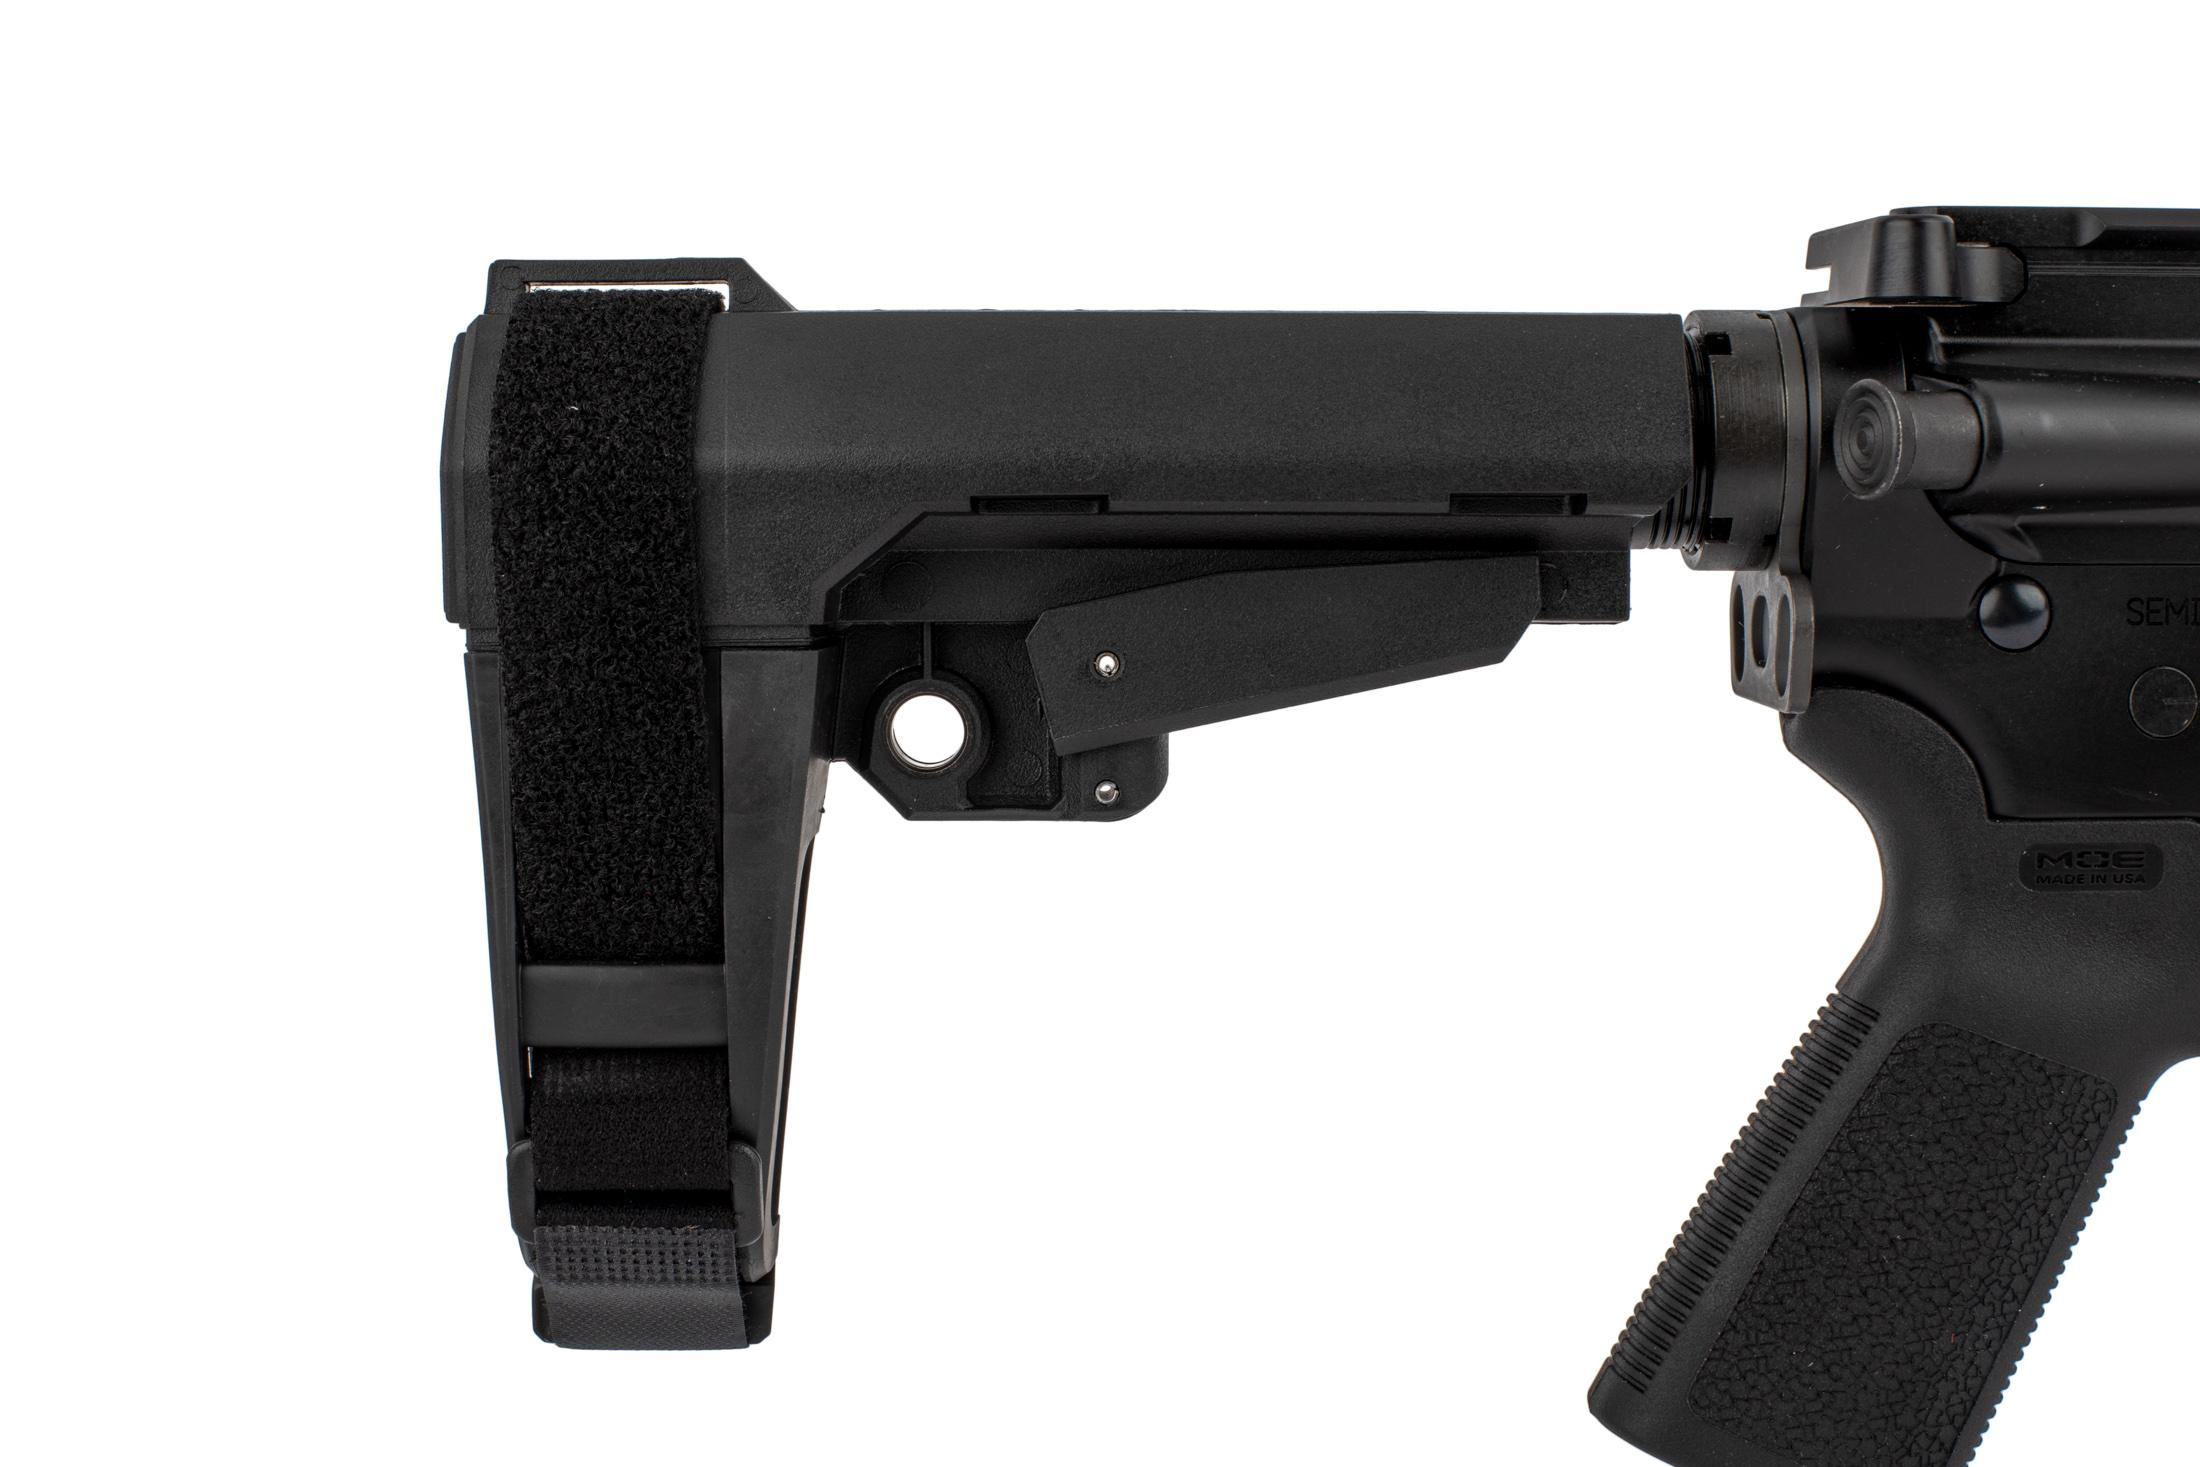 The CMMG Banshee 200 .45 acp AR15 Pistol with RipBrace features an ambidextrous sling loop end plate